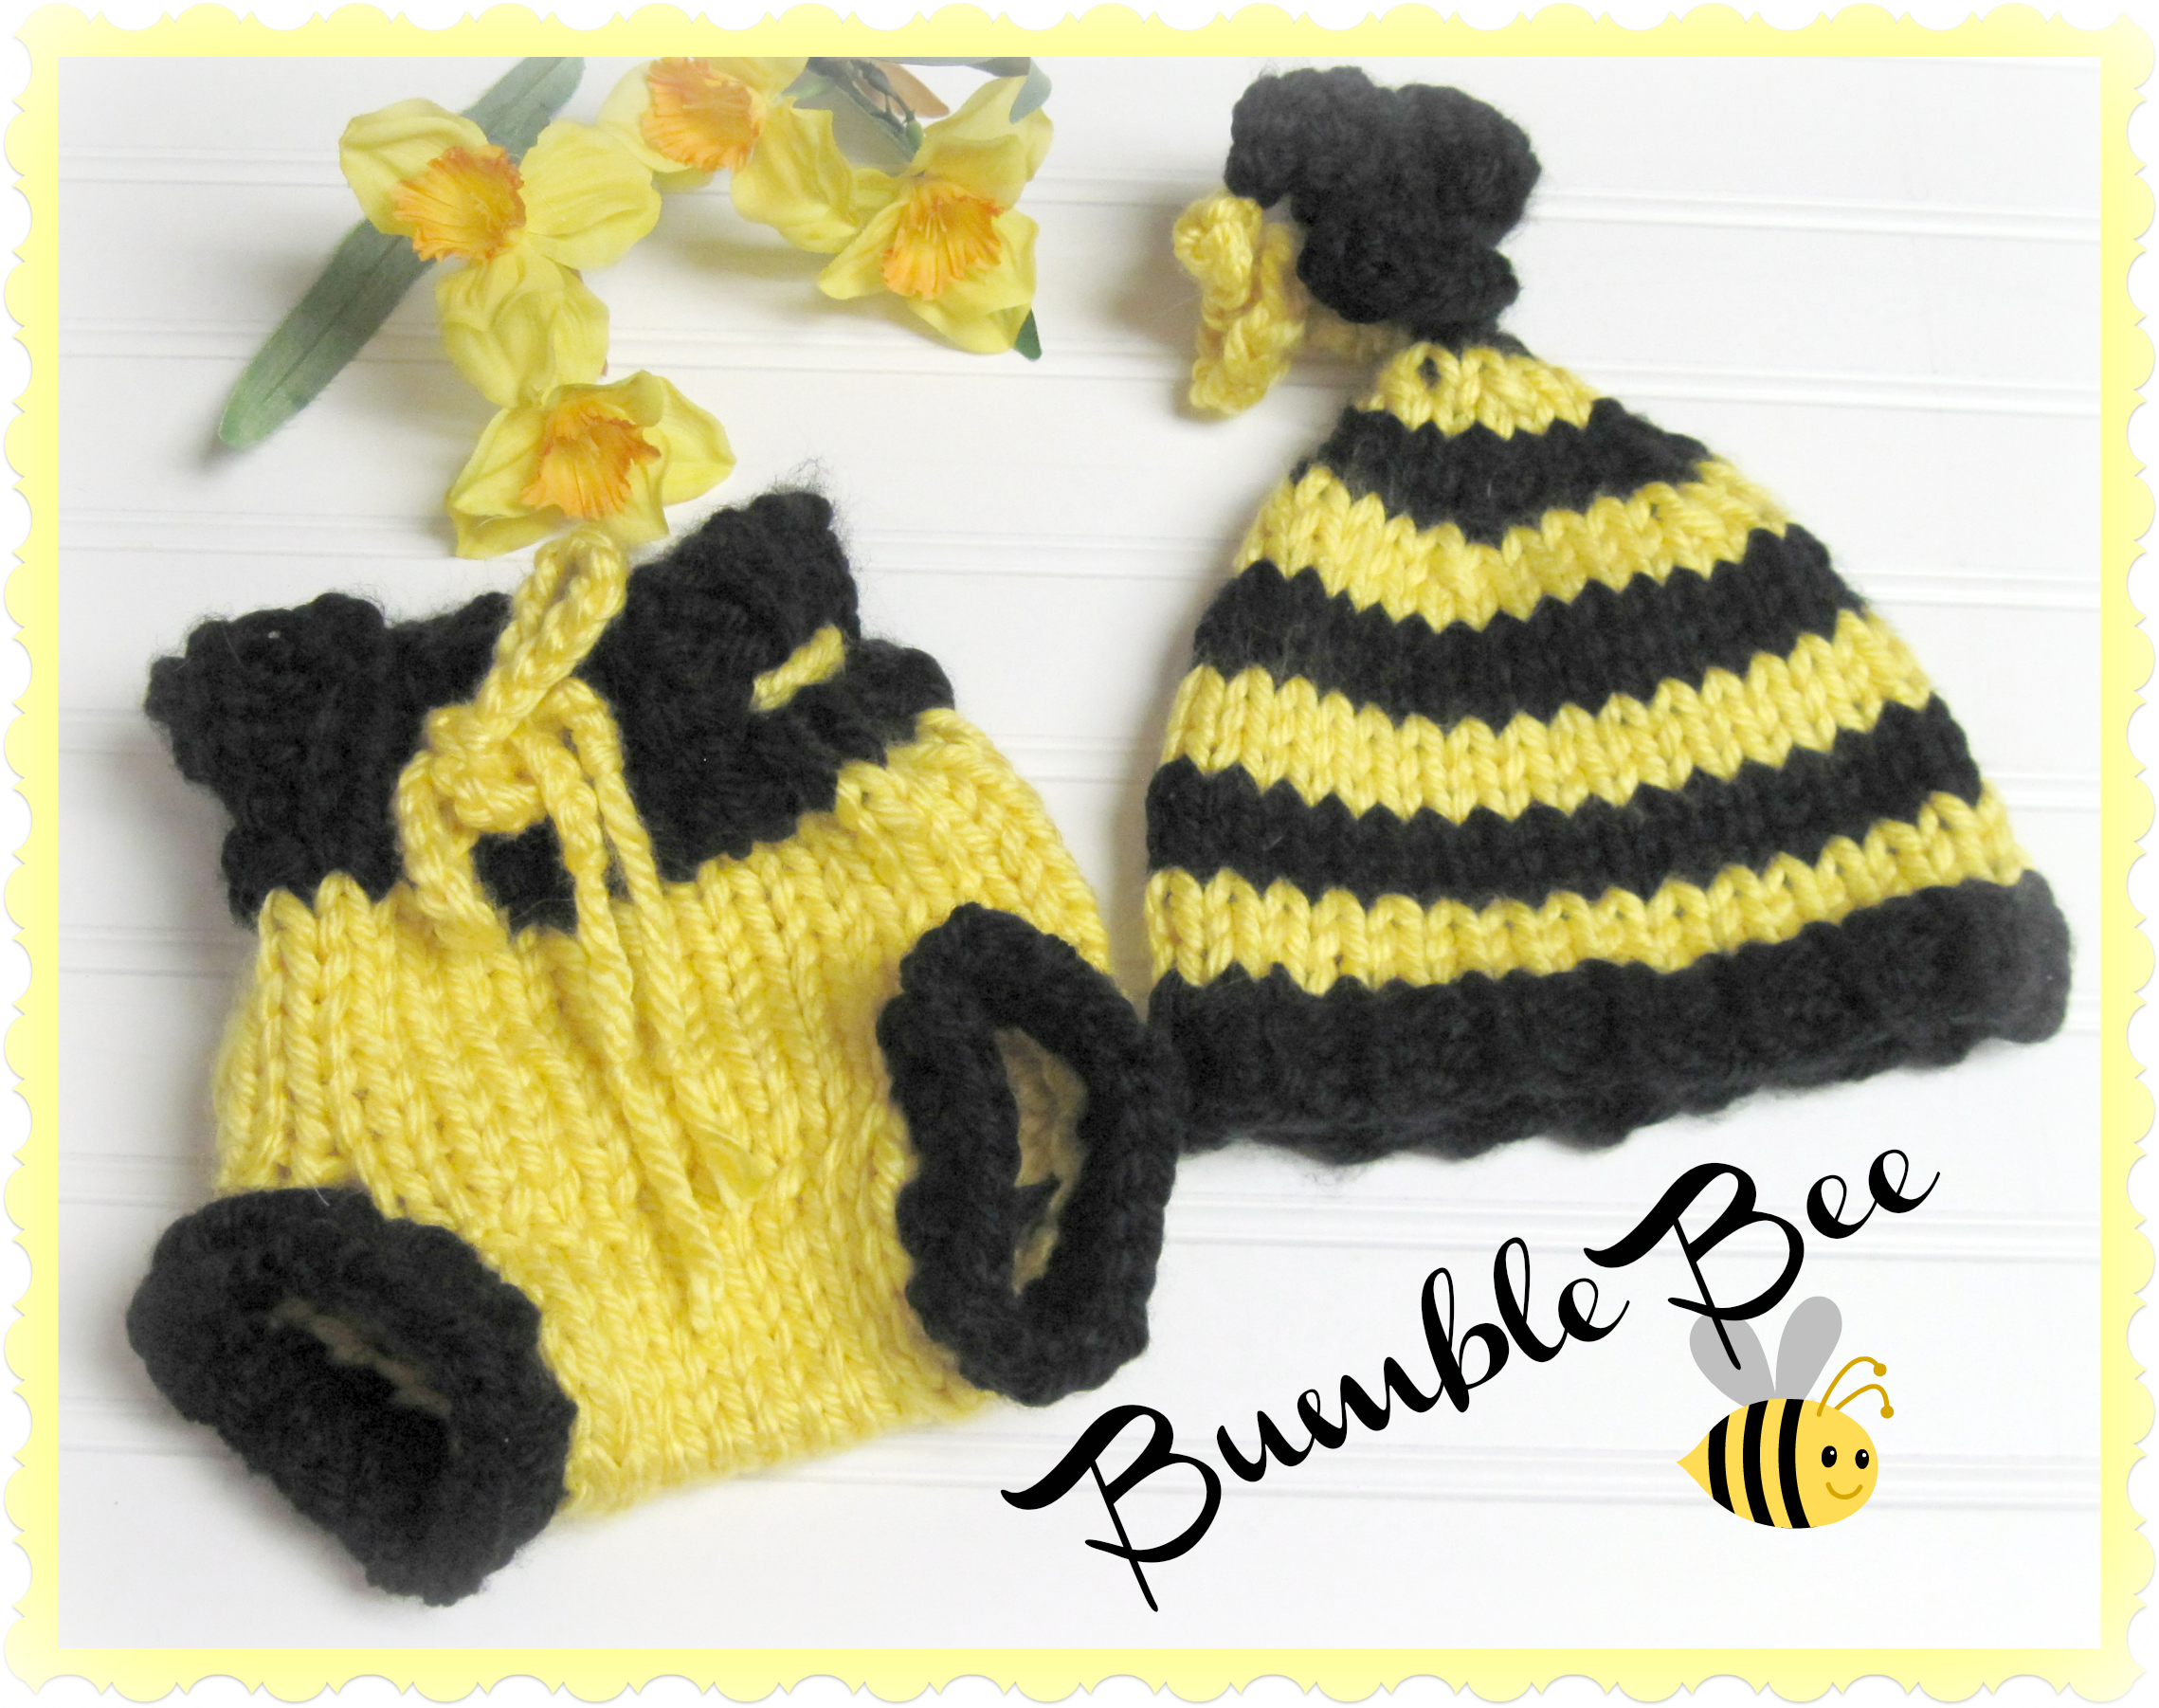 Bumble bee inspired hat and diaper cover